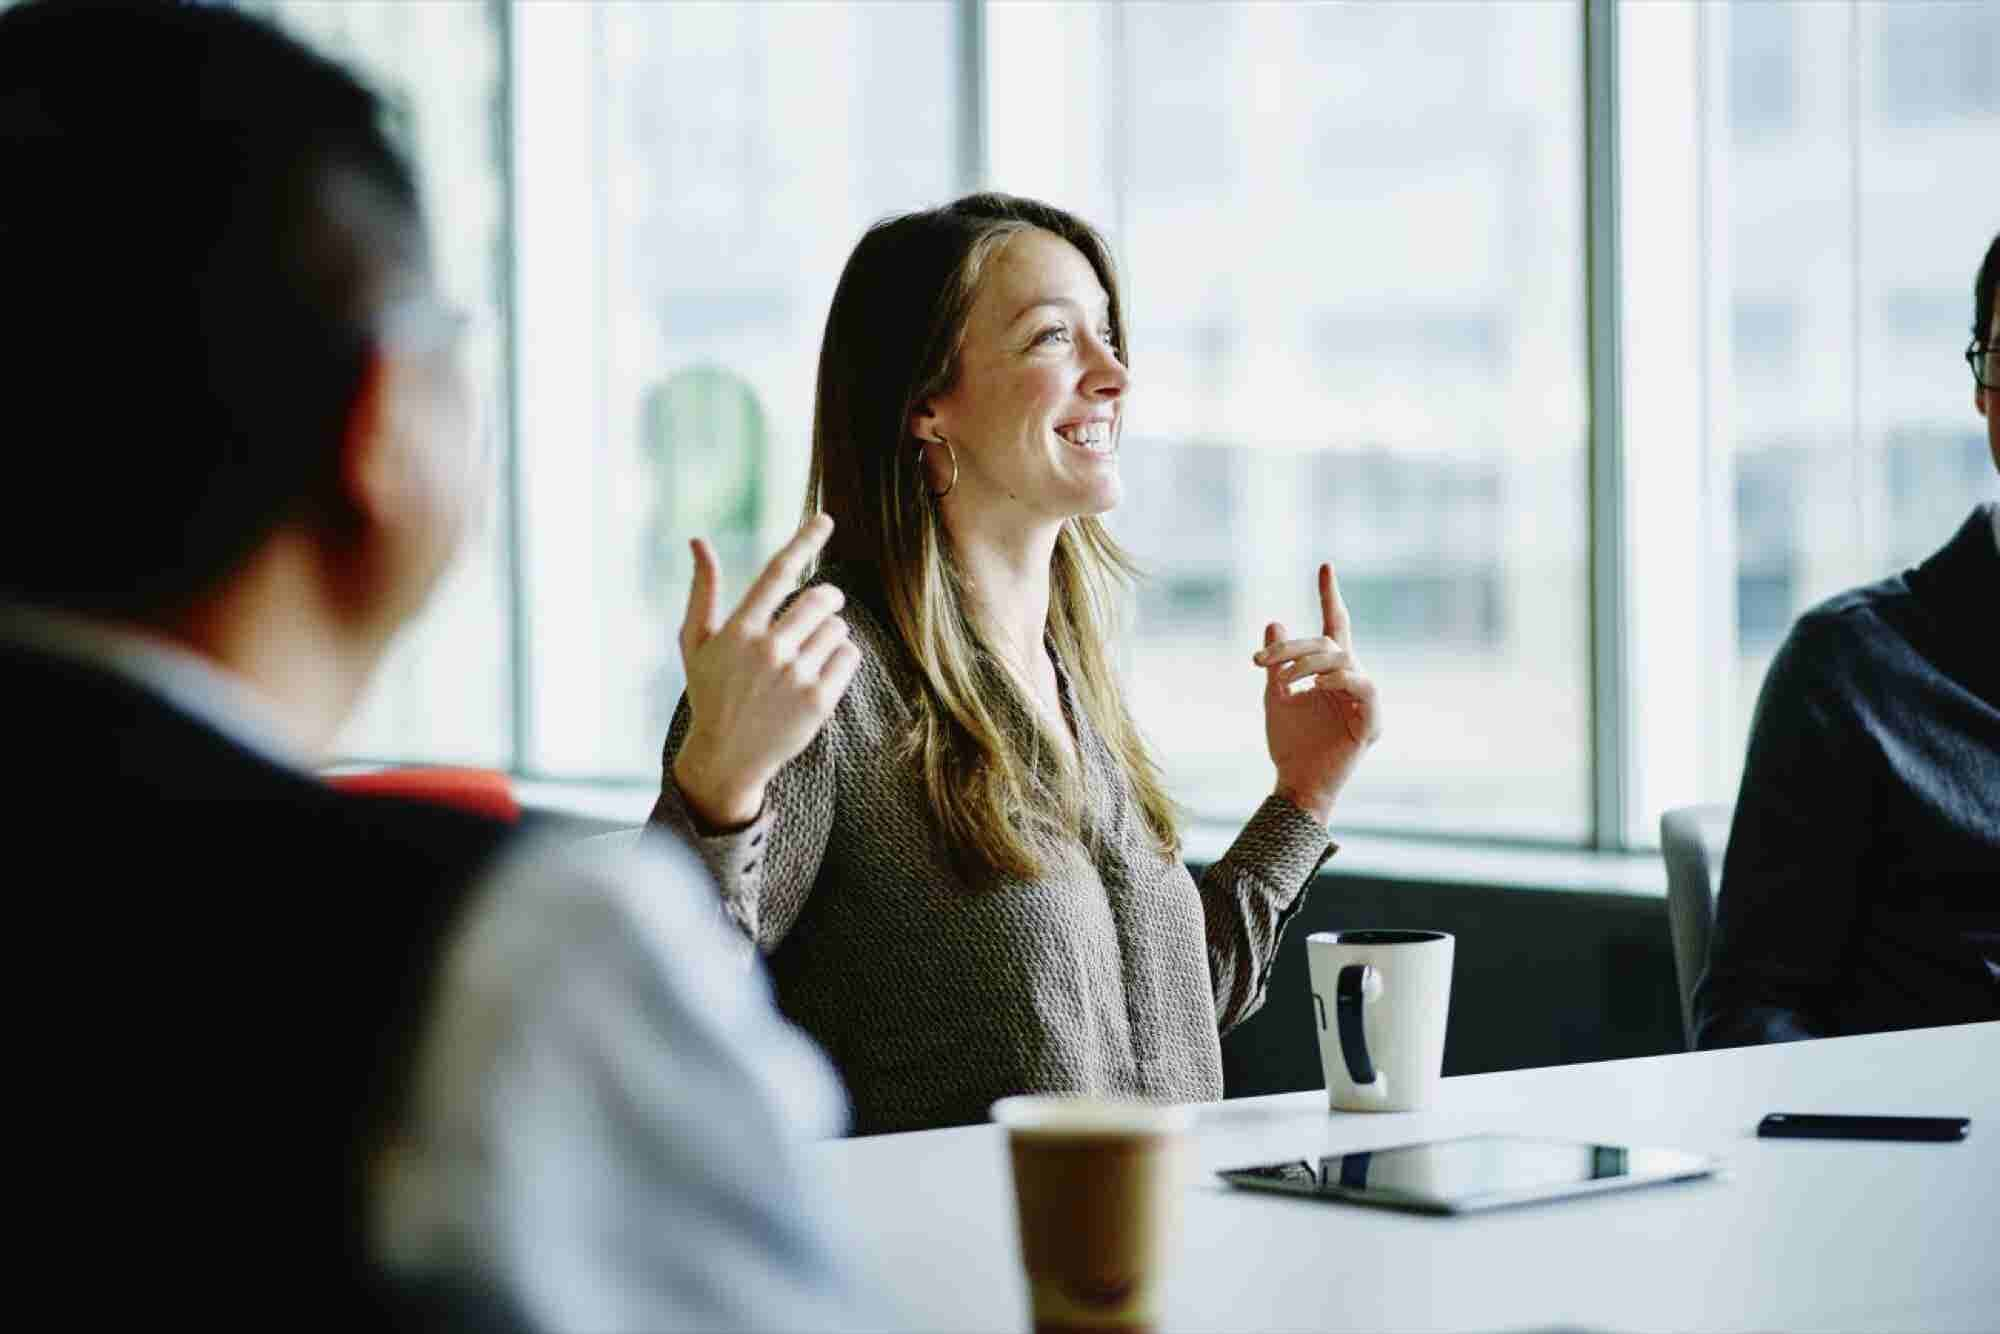 Head Into Your Next Male-Dominated Meeting Ready to Contribute by Following These Tips